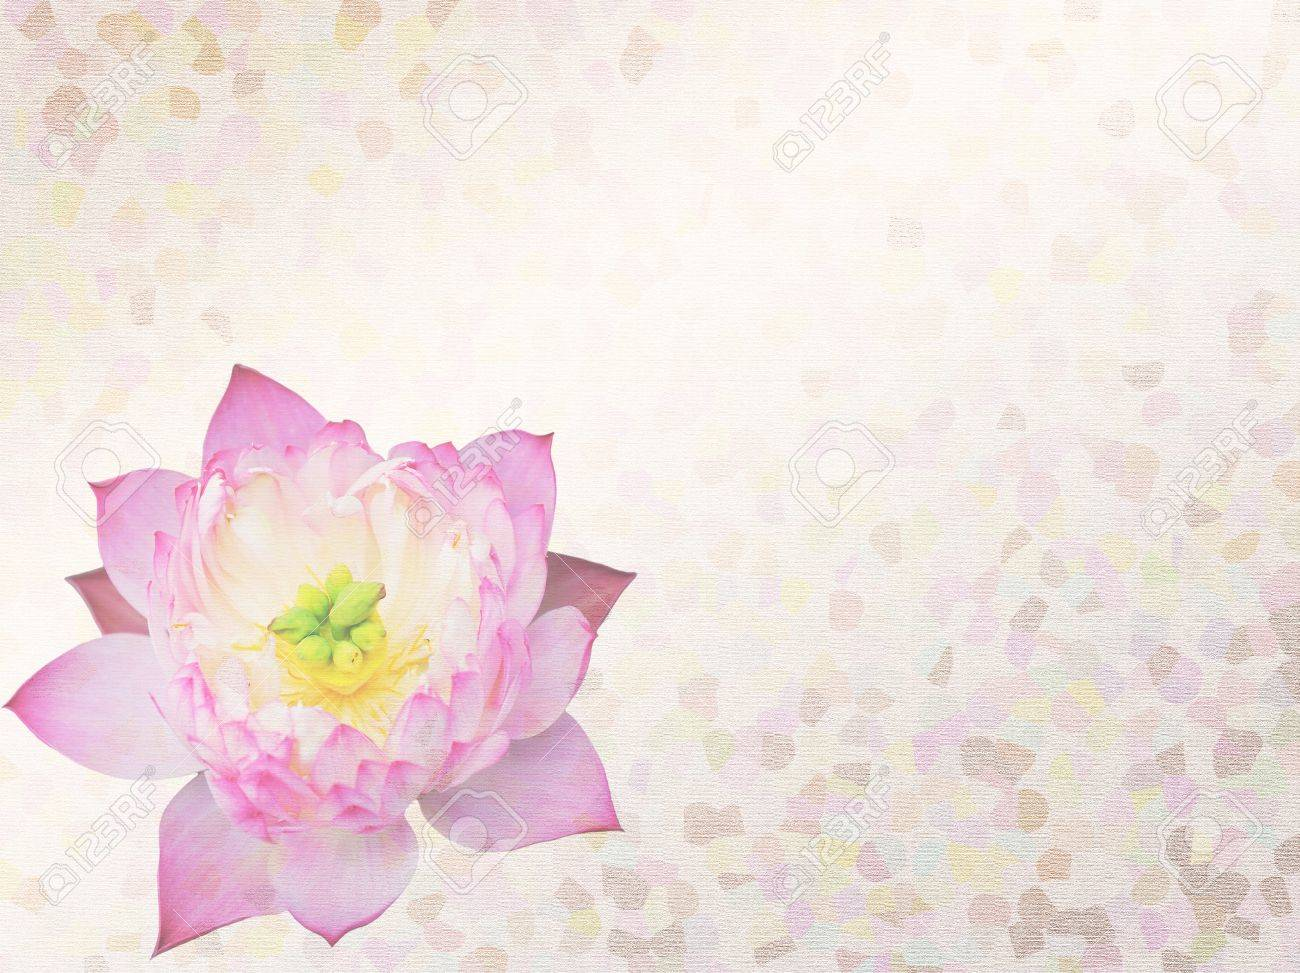 lotus and bamboo on Old antique vintage paper background Stock Photo - 12018217